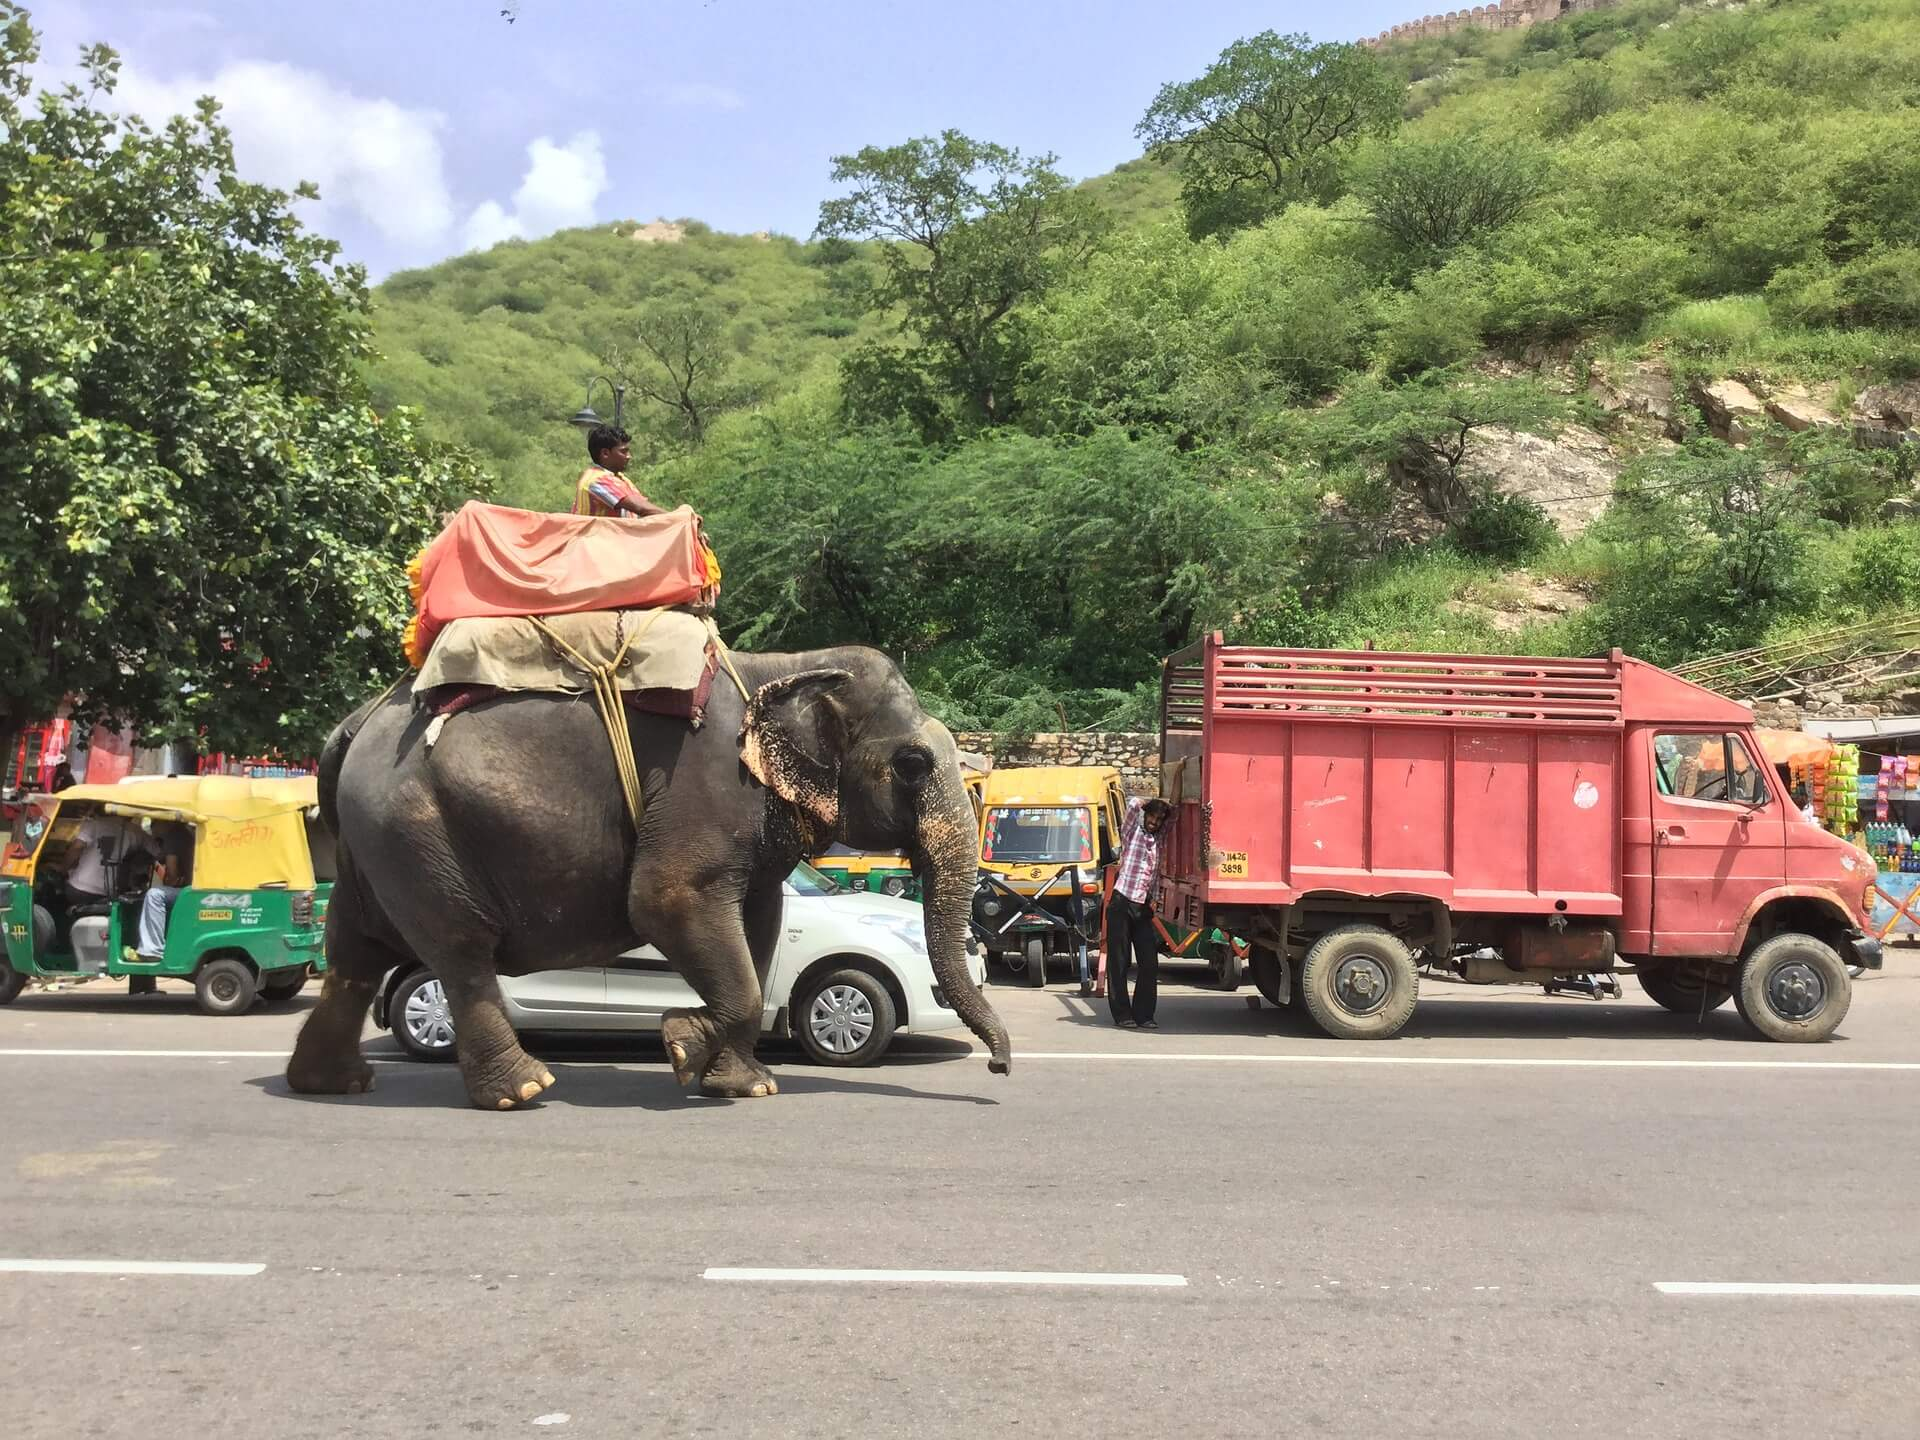 A man riding an elephant in India in a howdah